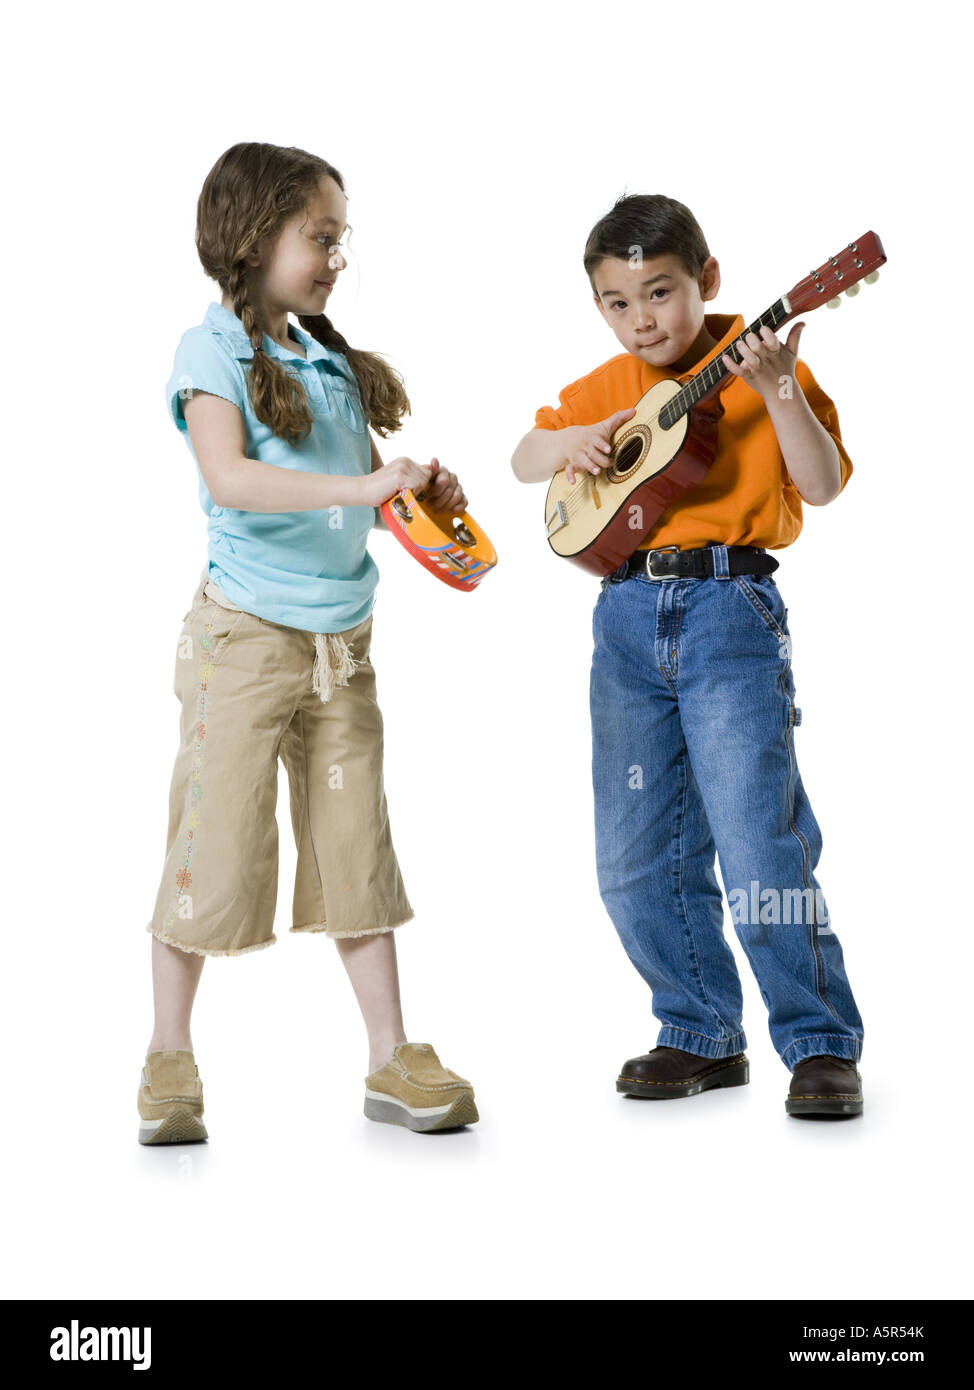 Portrait Of A Boy Playing The Guitar With Girl Standing Beside Him